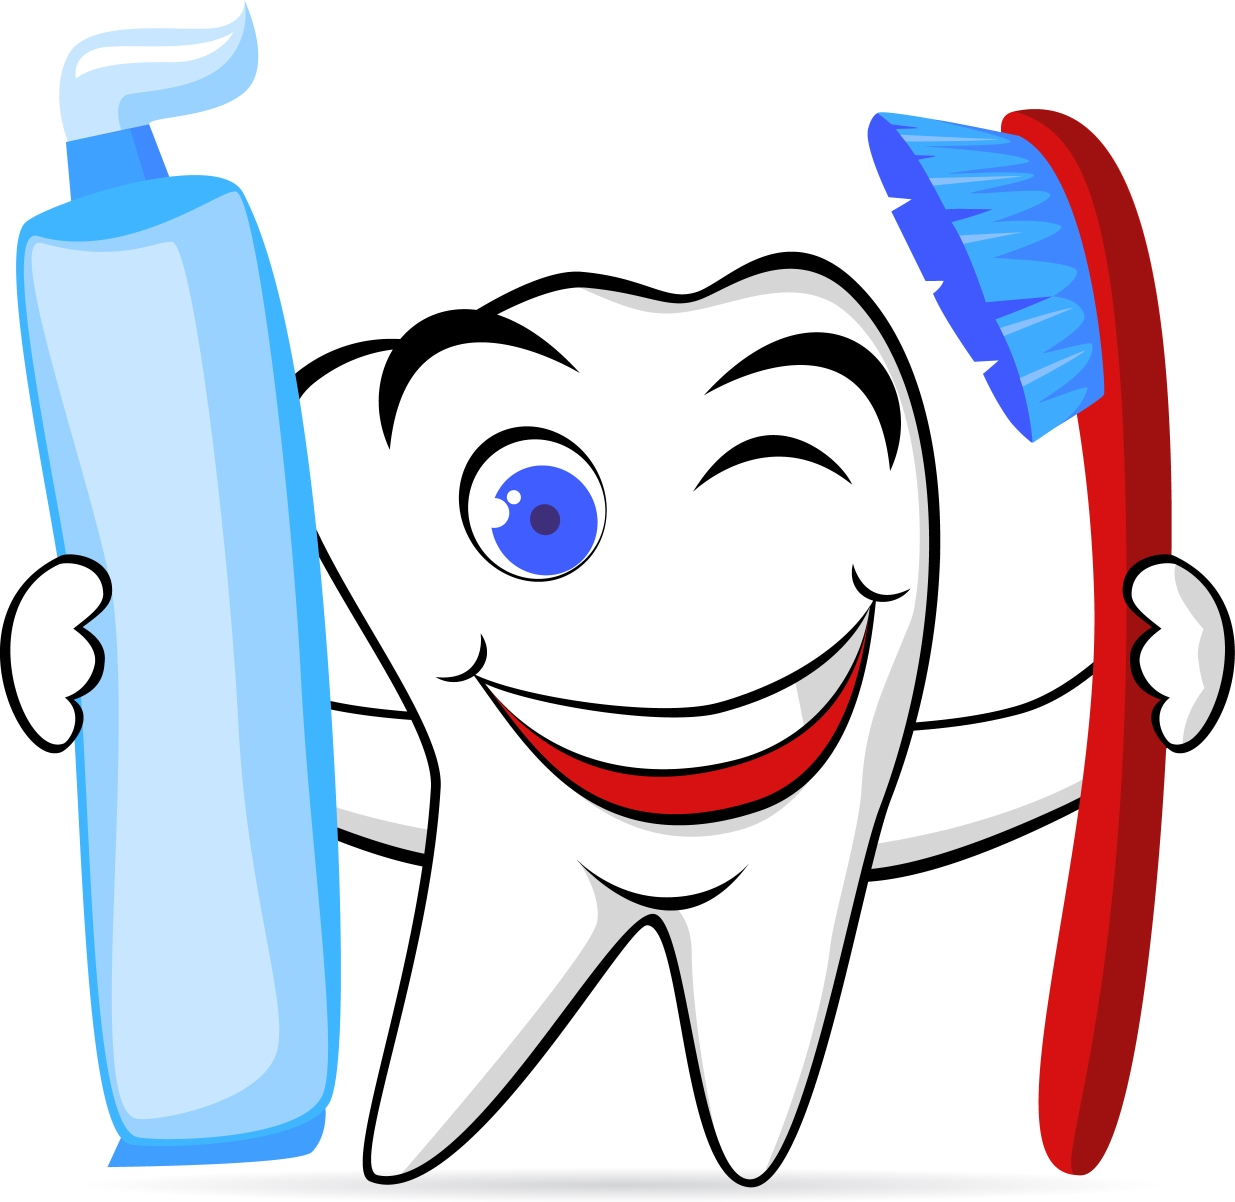 Toothbrush and toothpaste clipart, cliparts of Toothbrush ... |Tooth Toothbrush Graphic